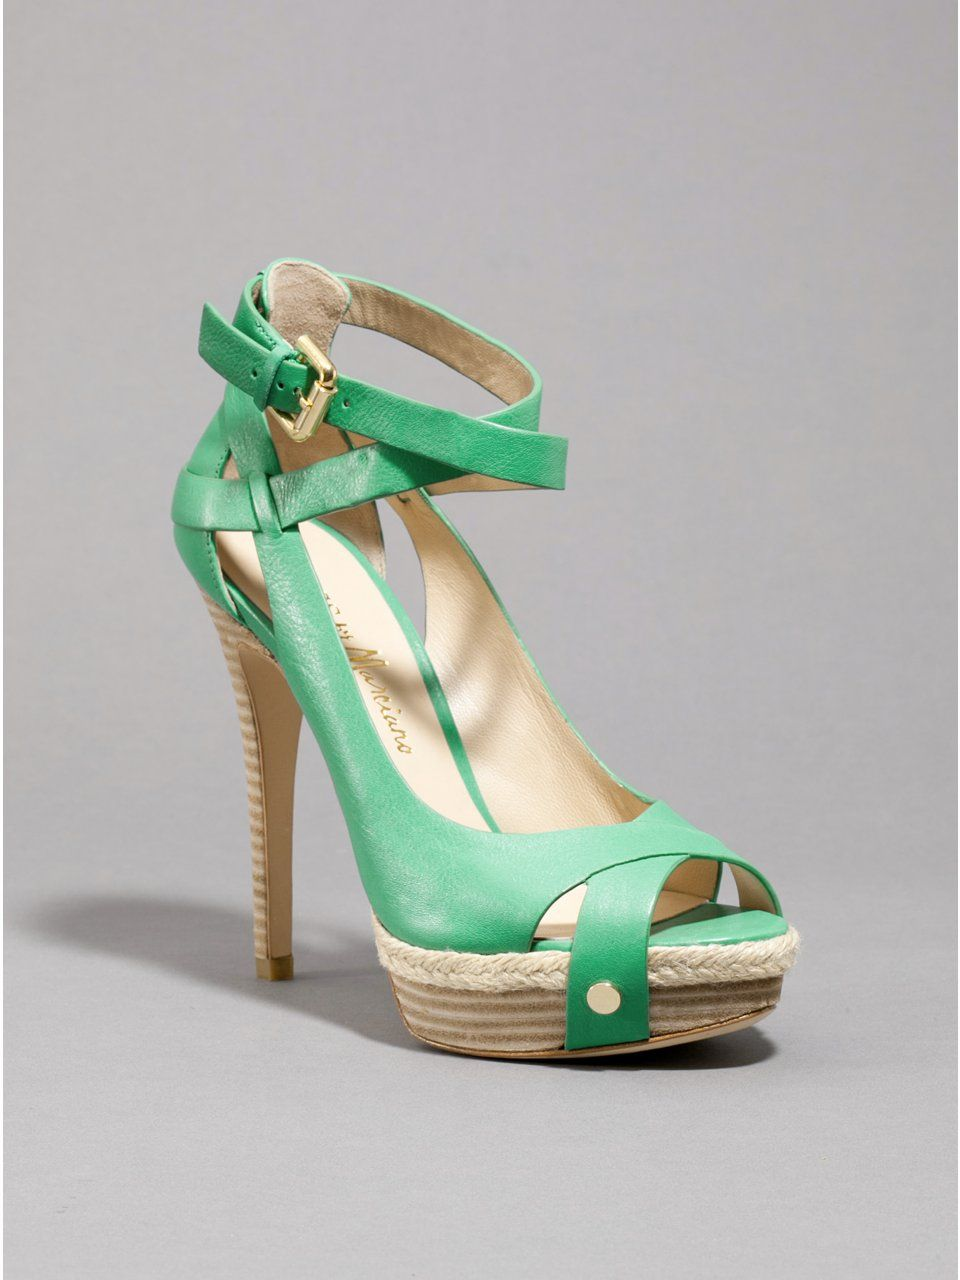 Guess by Marciano Keaton Platform  These were some of the cutest shoes i have ever found and they look so much better on!!!!! I MUST HAVE THESE!!!!